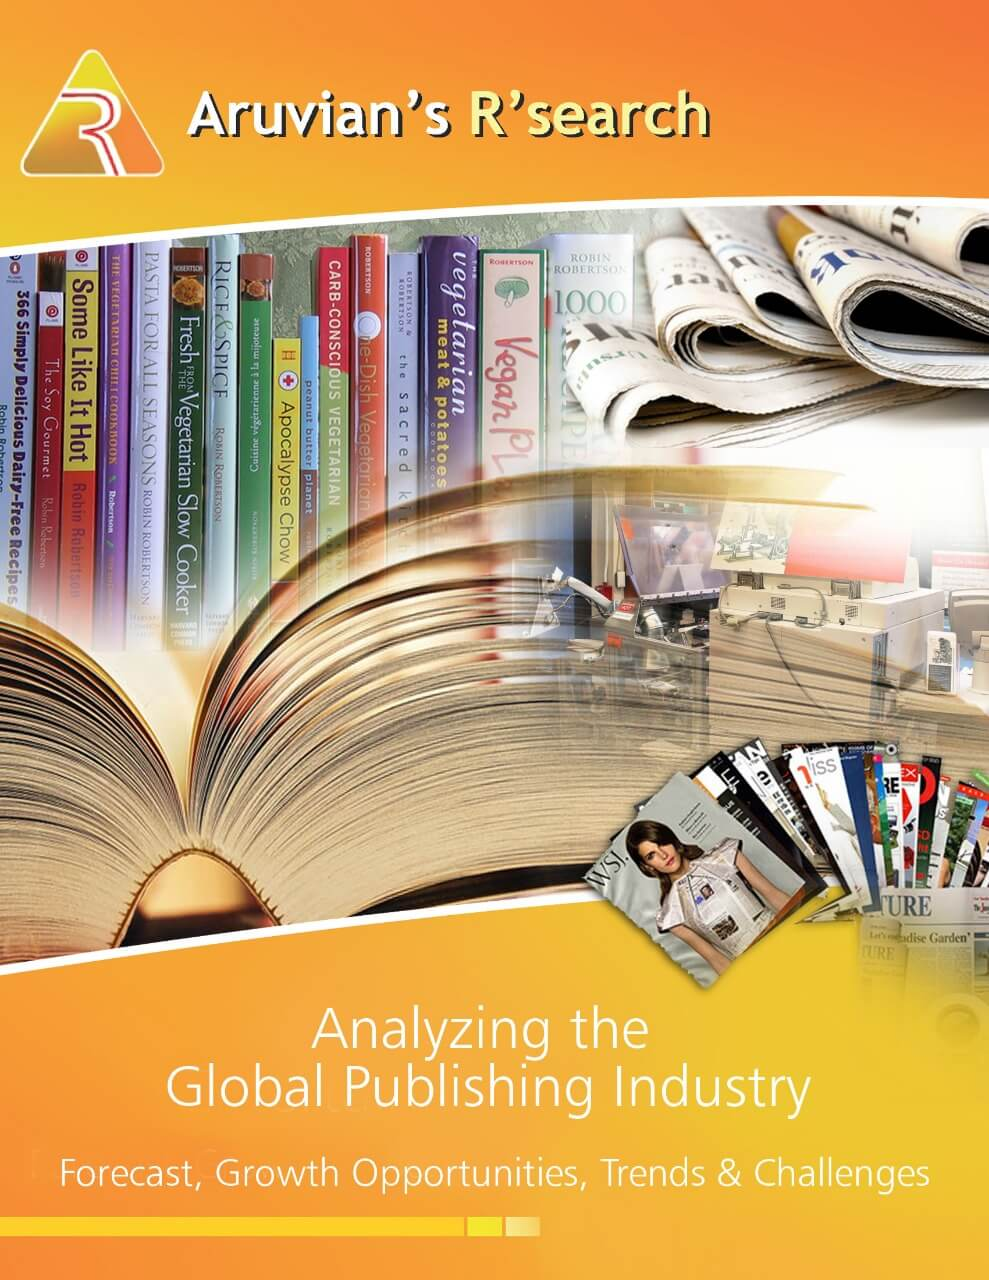 Analyzing the Global Publishing Industry